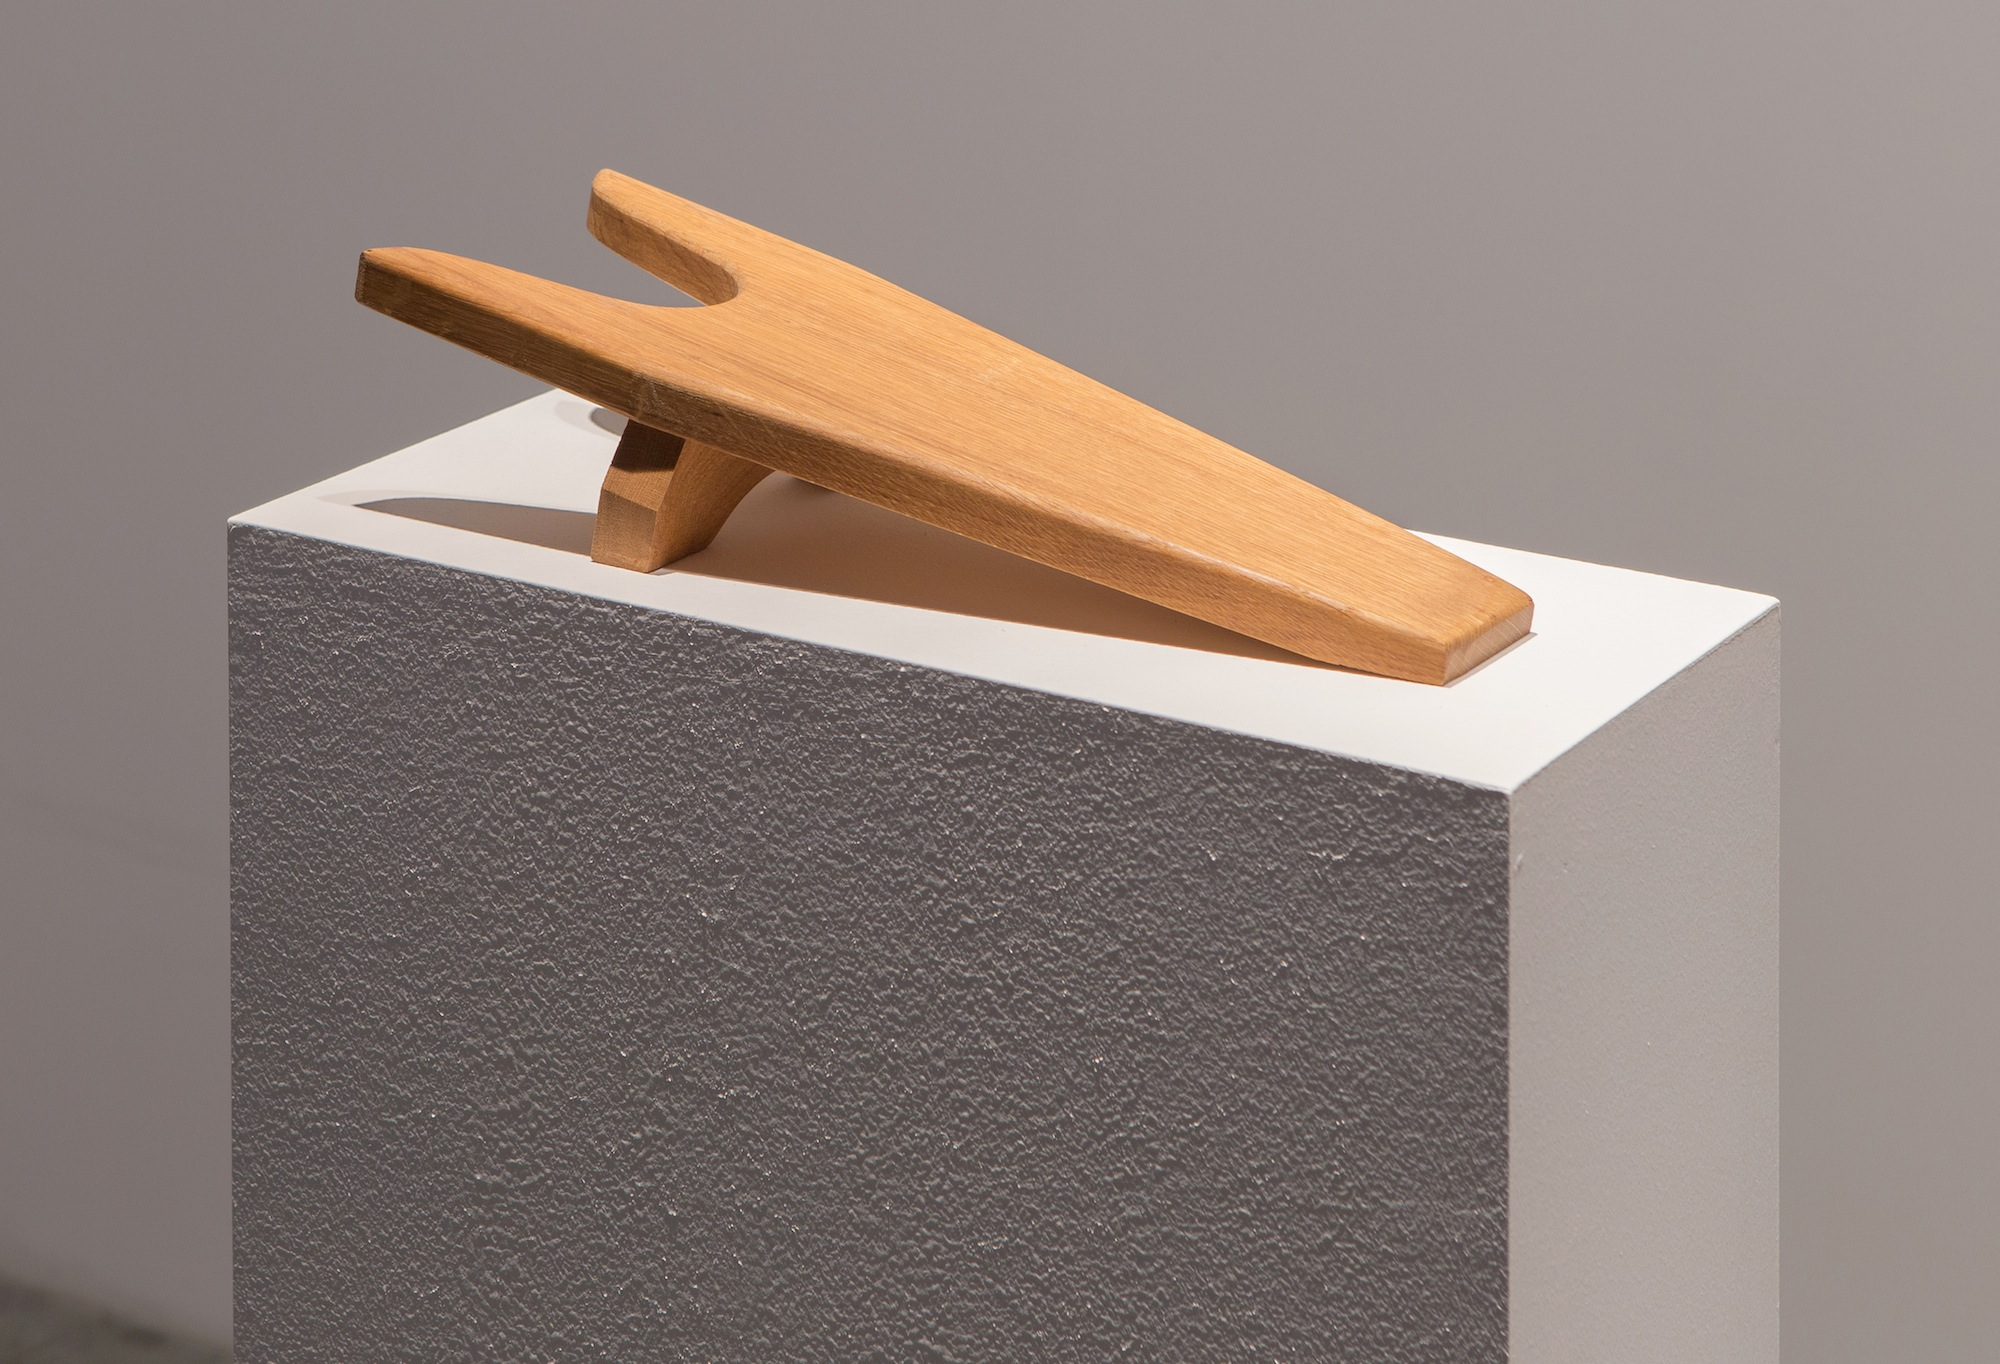 Objected 1 2013 Wood sculpture 14 x 39 x 8 cm